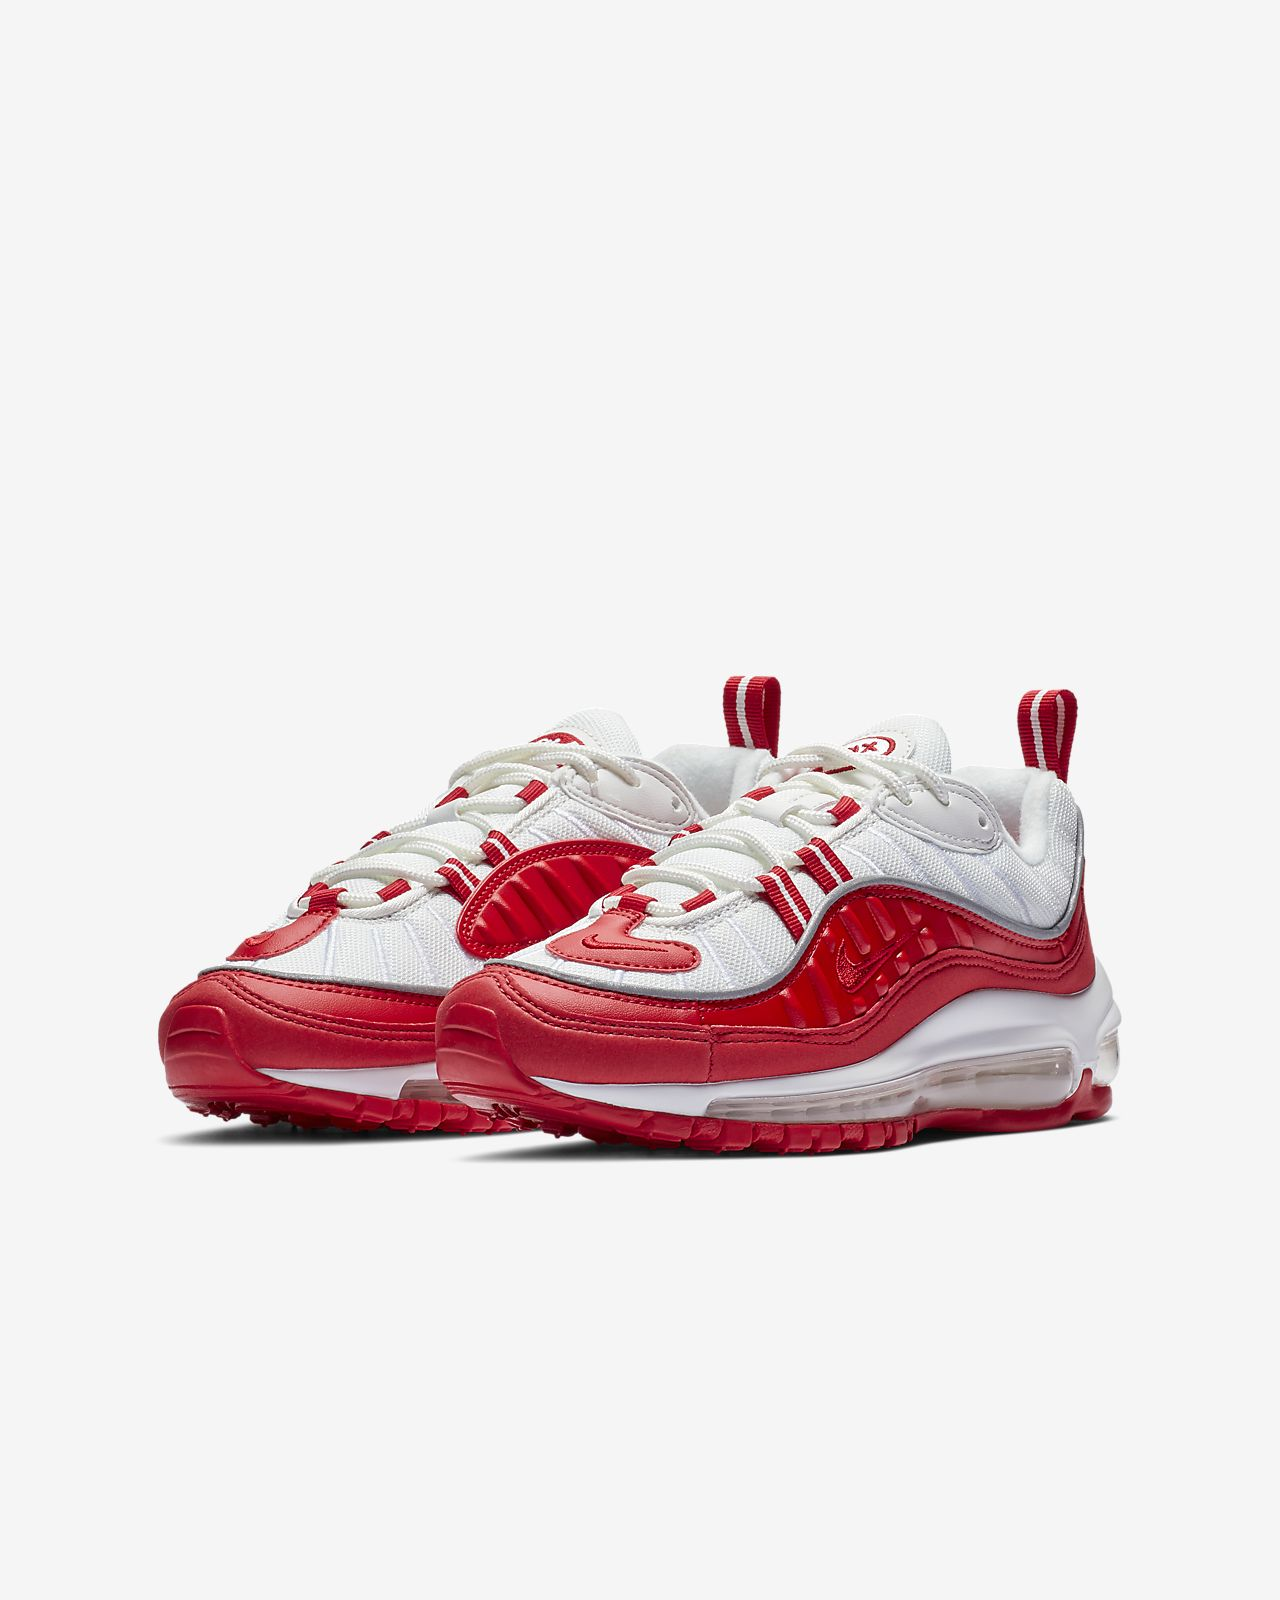 low priced f202a 3e6e2 ... Nike Air Max 98 Older Kids  Shoe